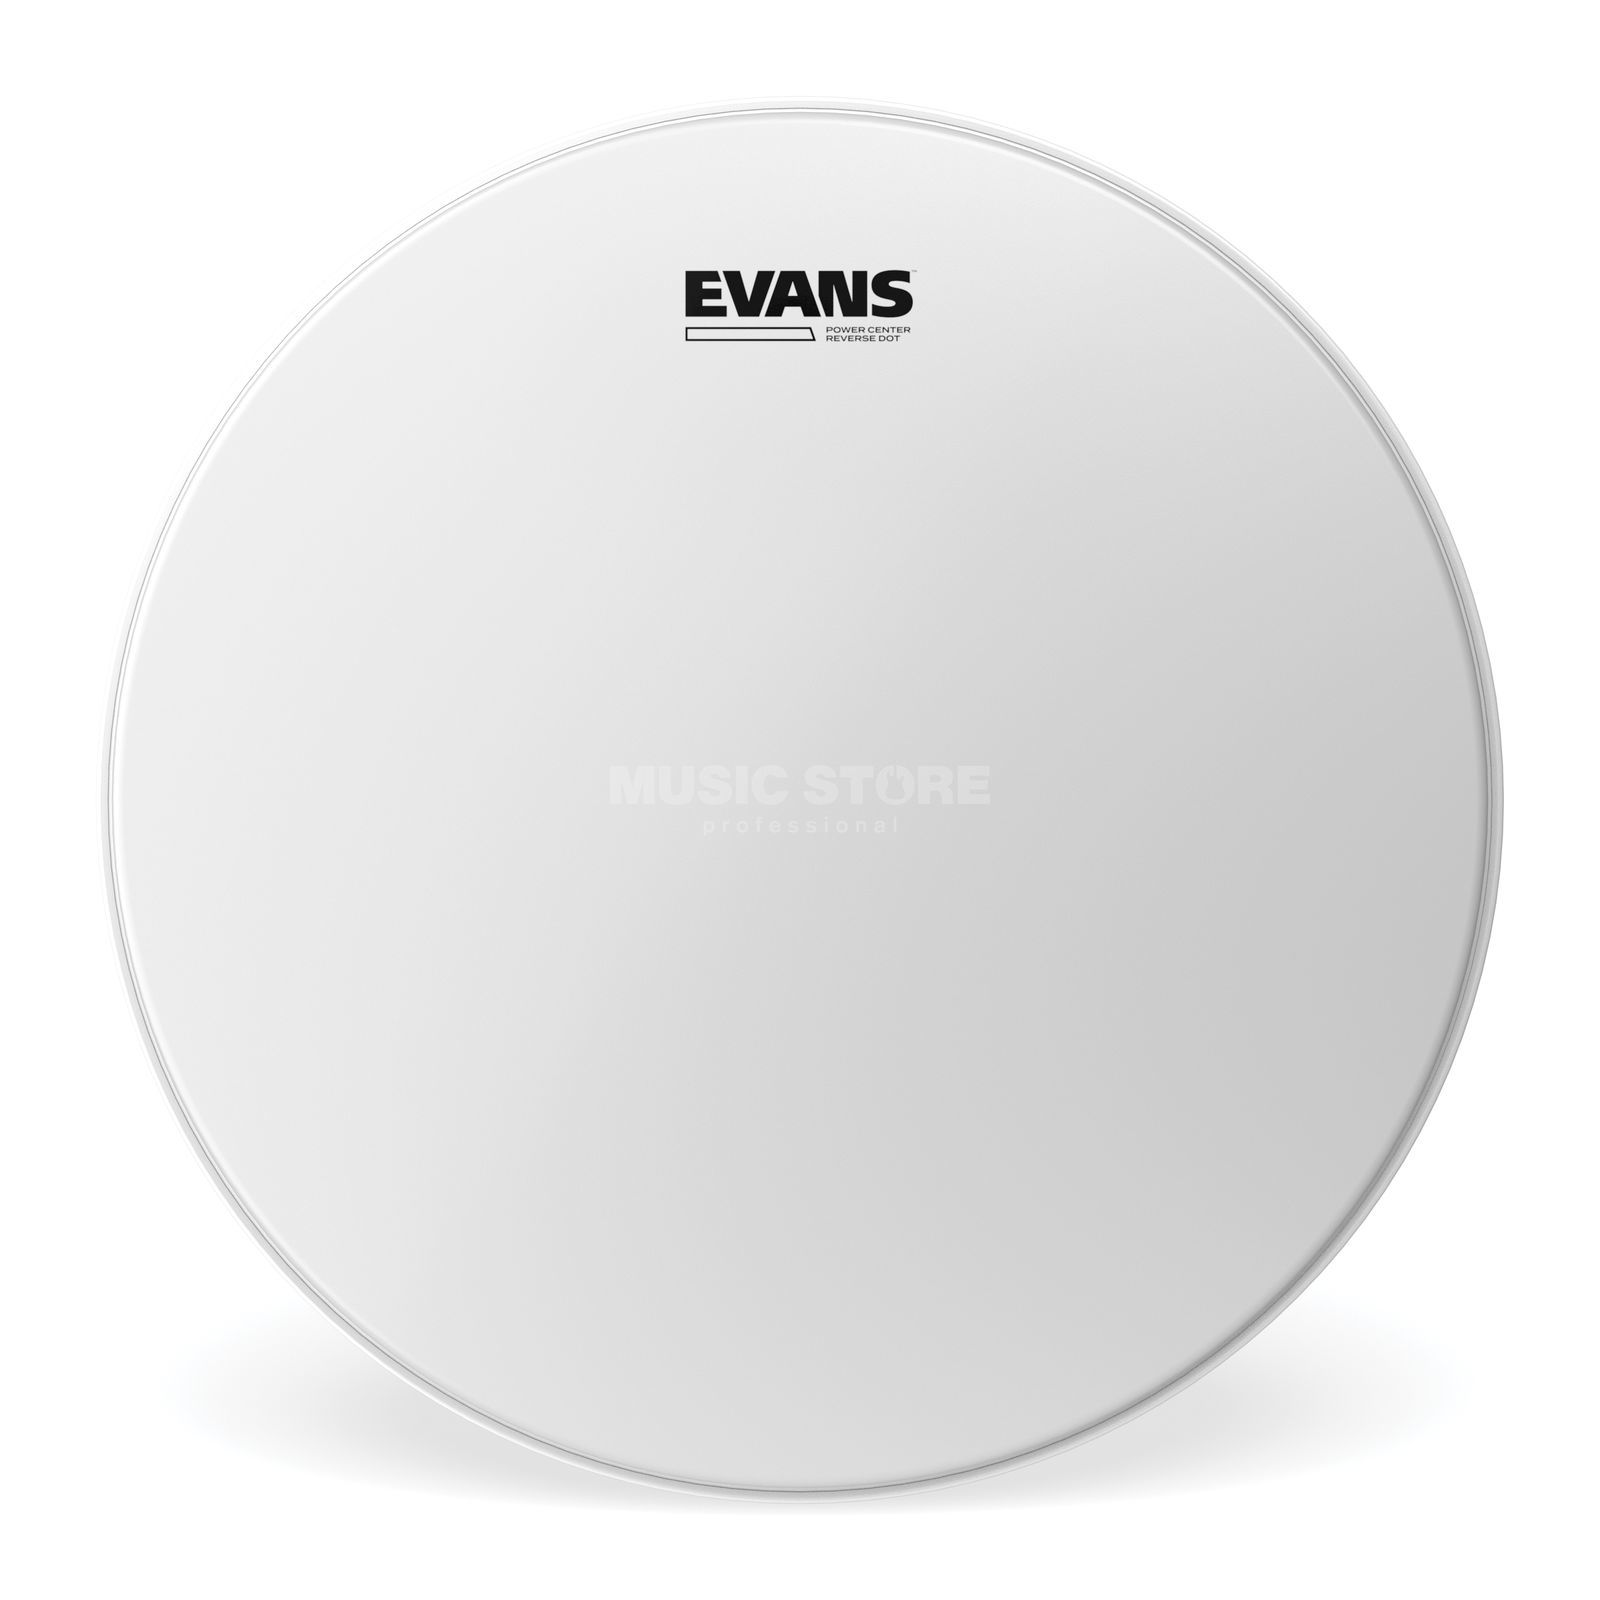 "Evans Power Center 14"", B14G1RD, Reverse Dot, Snare Batter Product Image"